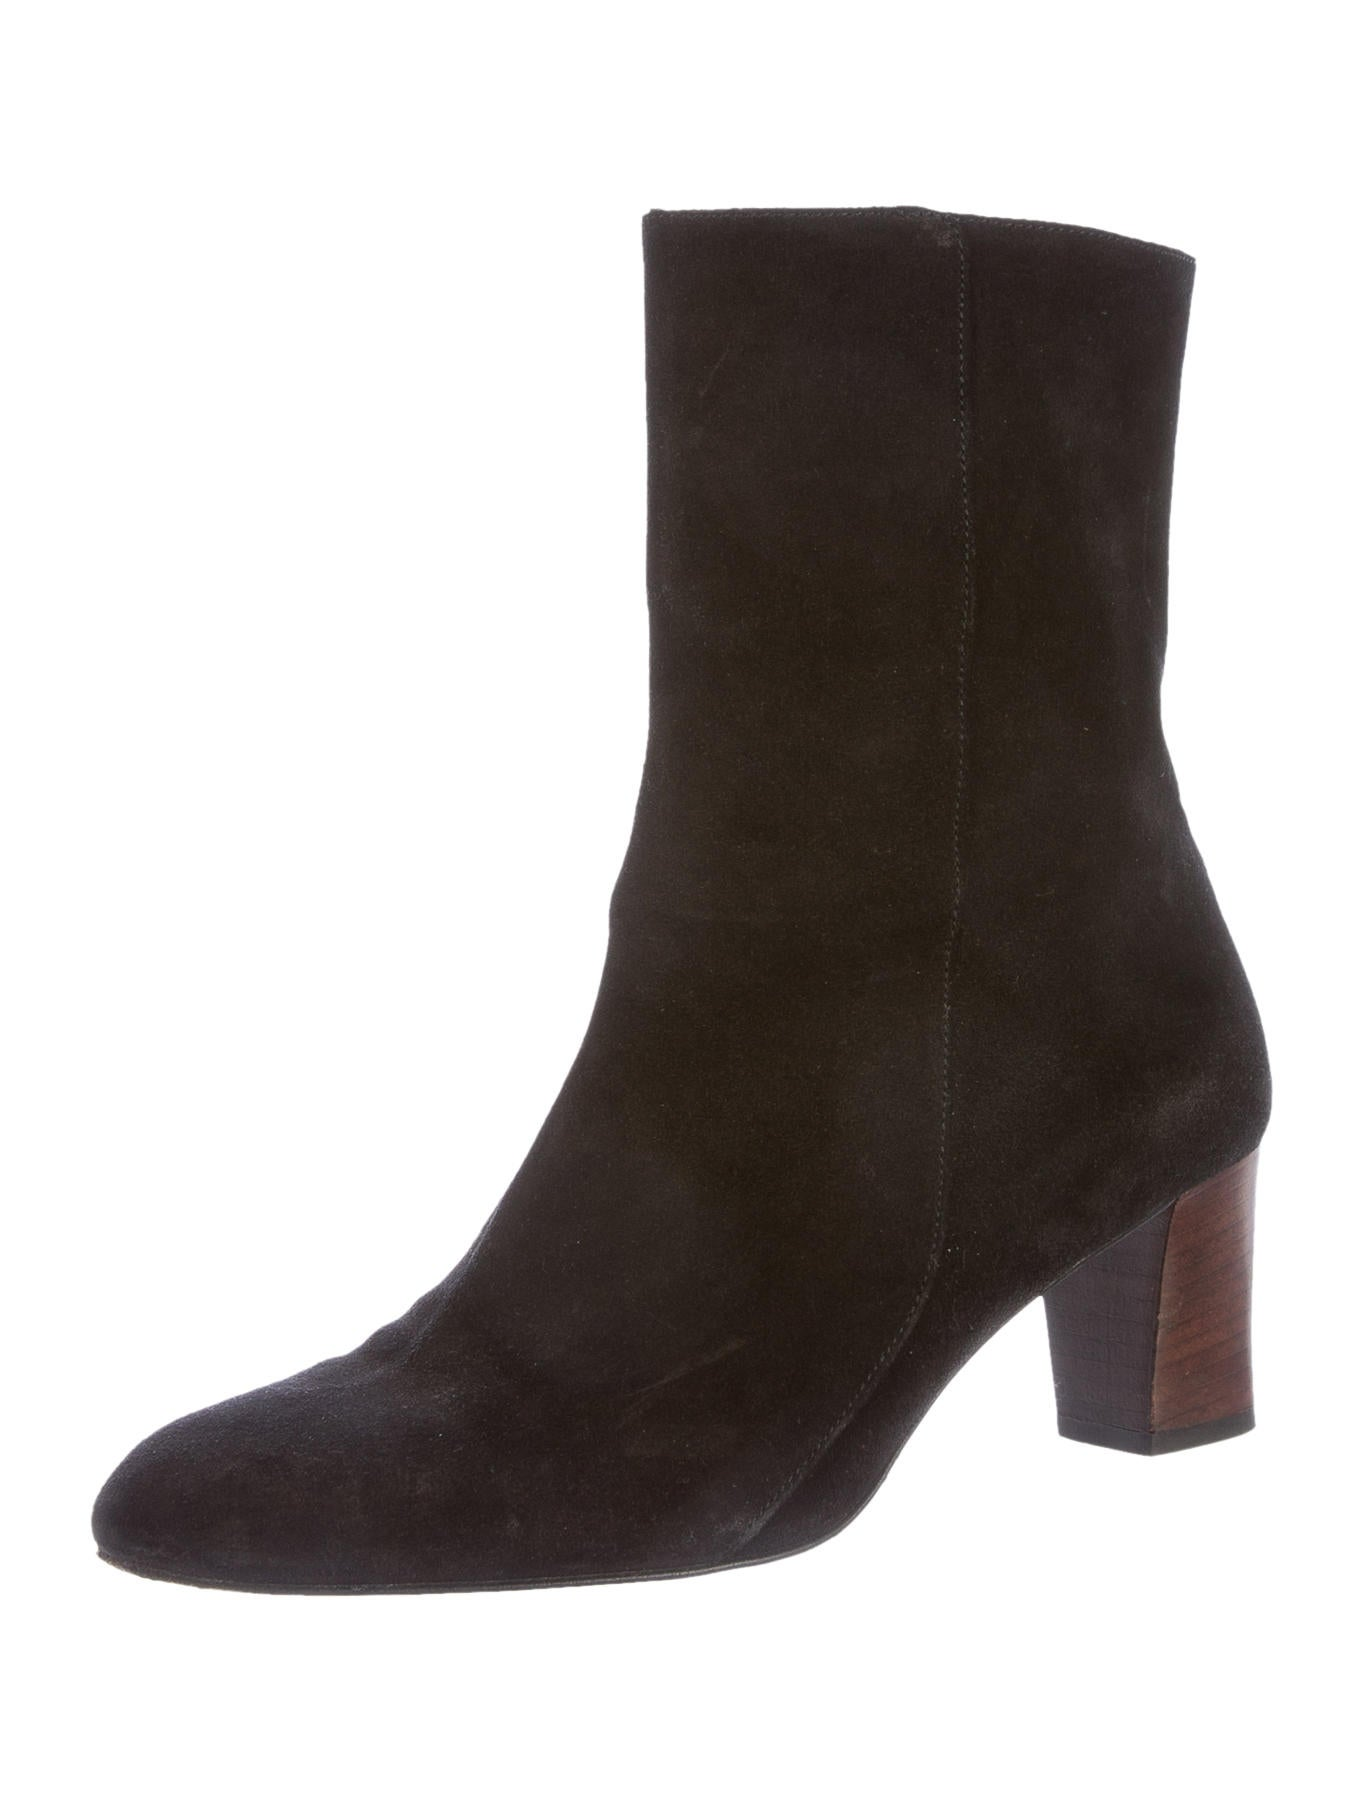 robert clergerie suede toe ankle boots shoes